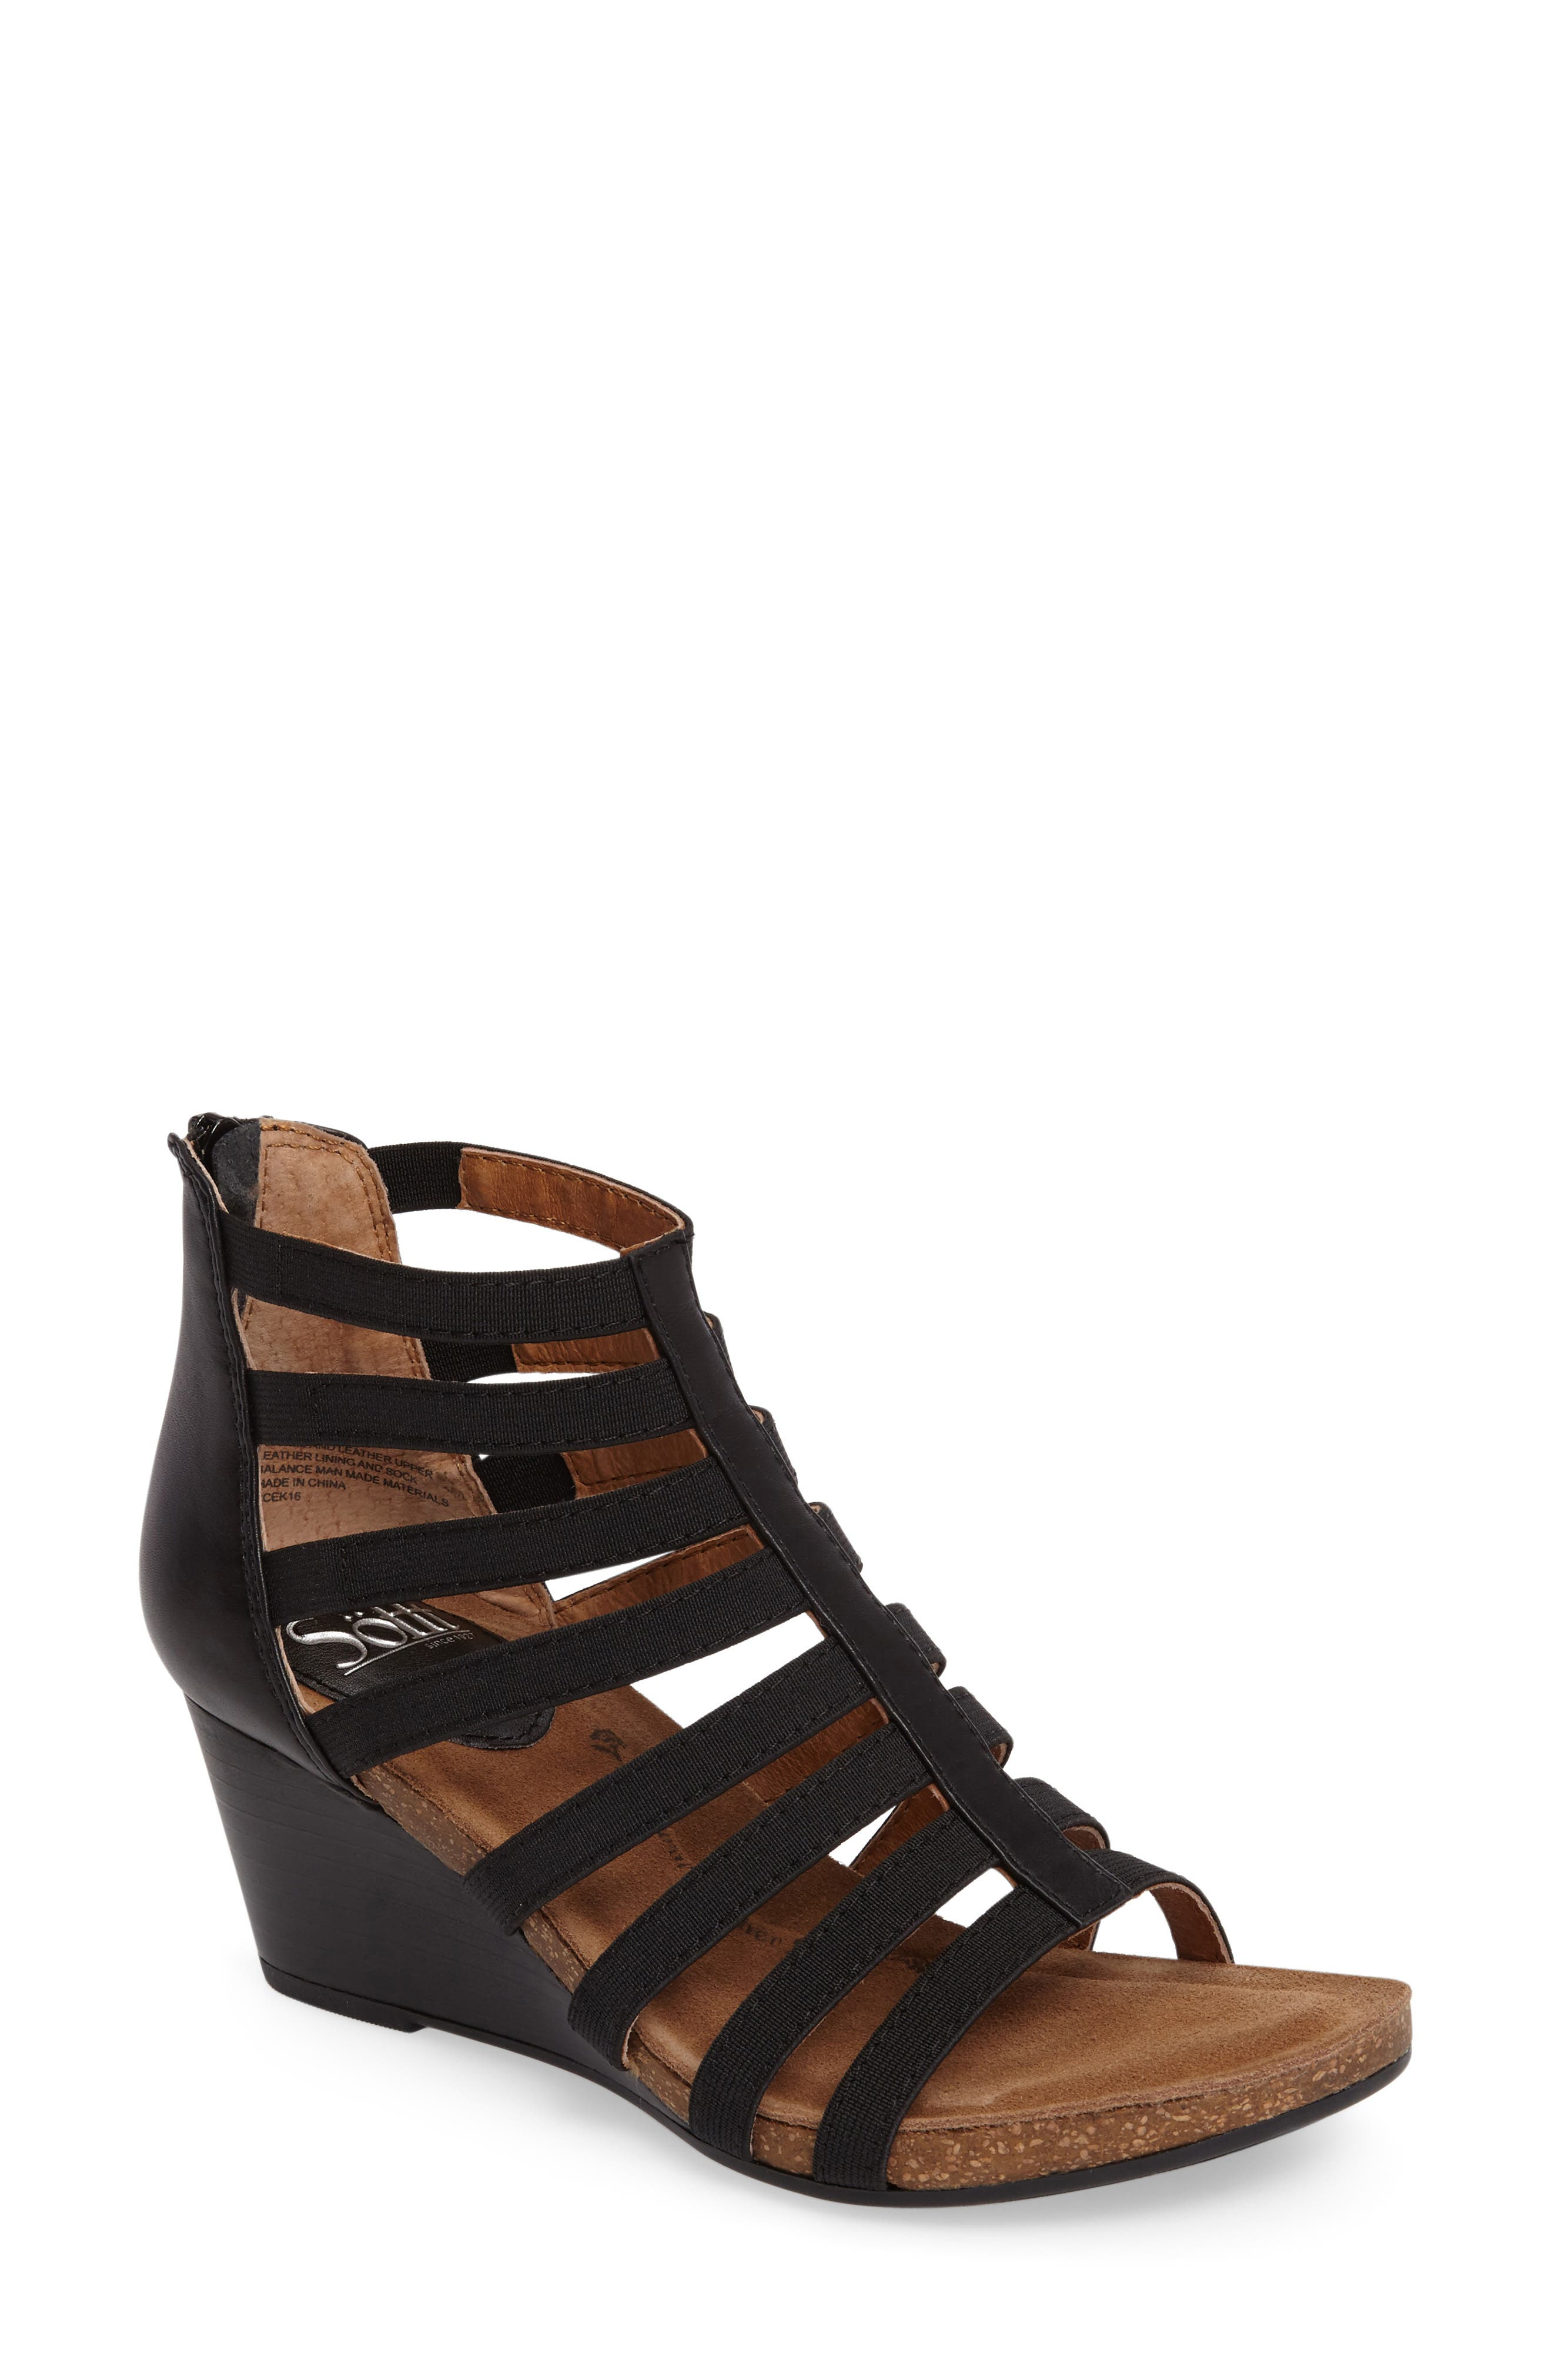 Mati Caged Wedge Sandal,                         Main,                         color,